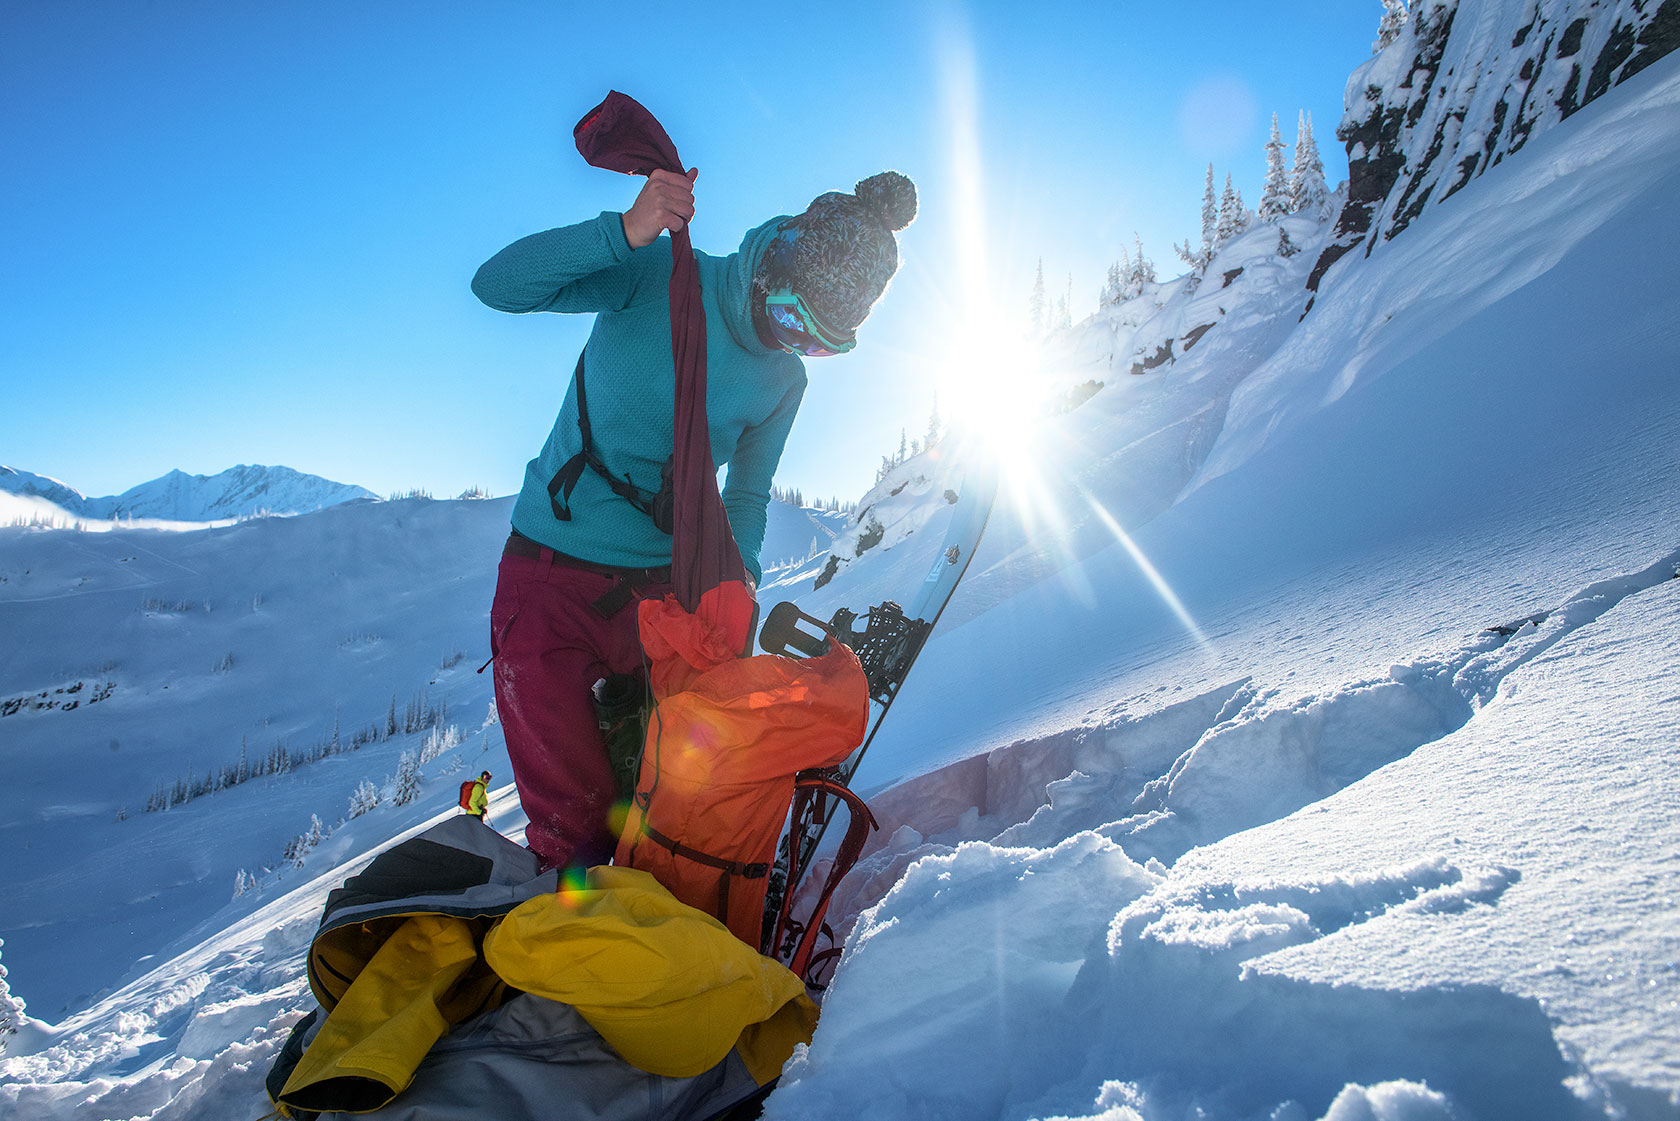 austin-trigg-patagonia-banff-alberta-winter-canada-lifestyle-adventure-mountains-rogers-pass-backcountry-outer-wear-cloths.jpg